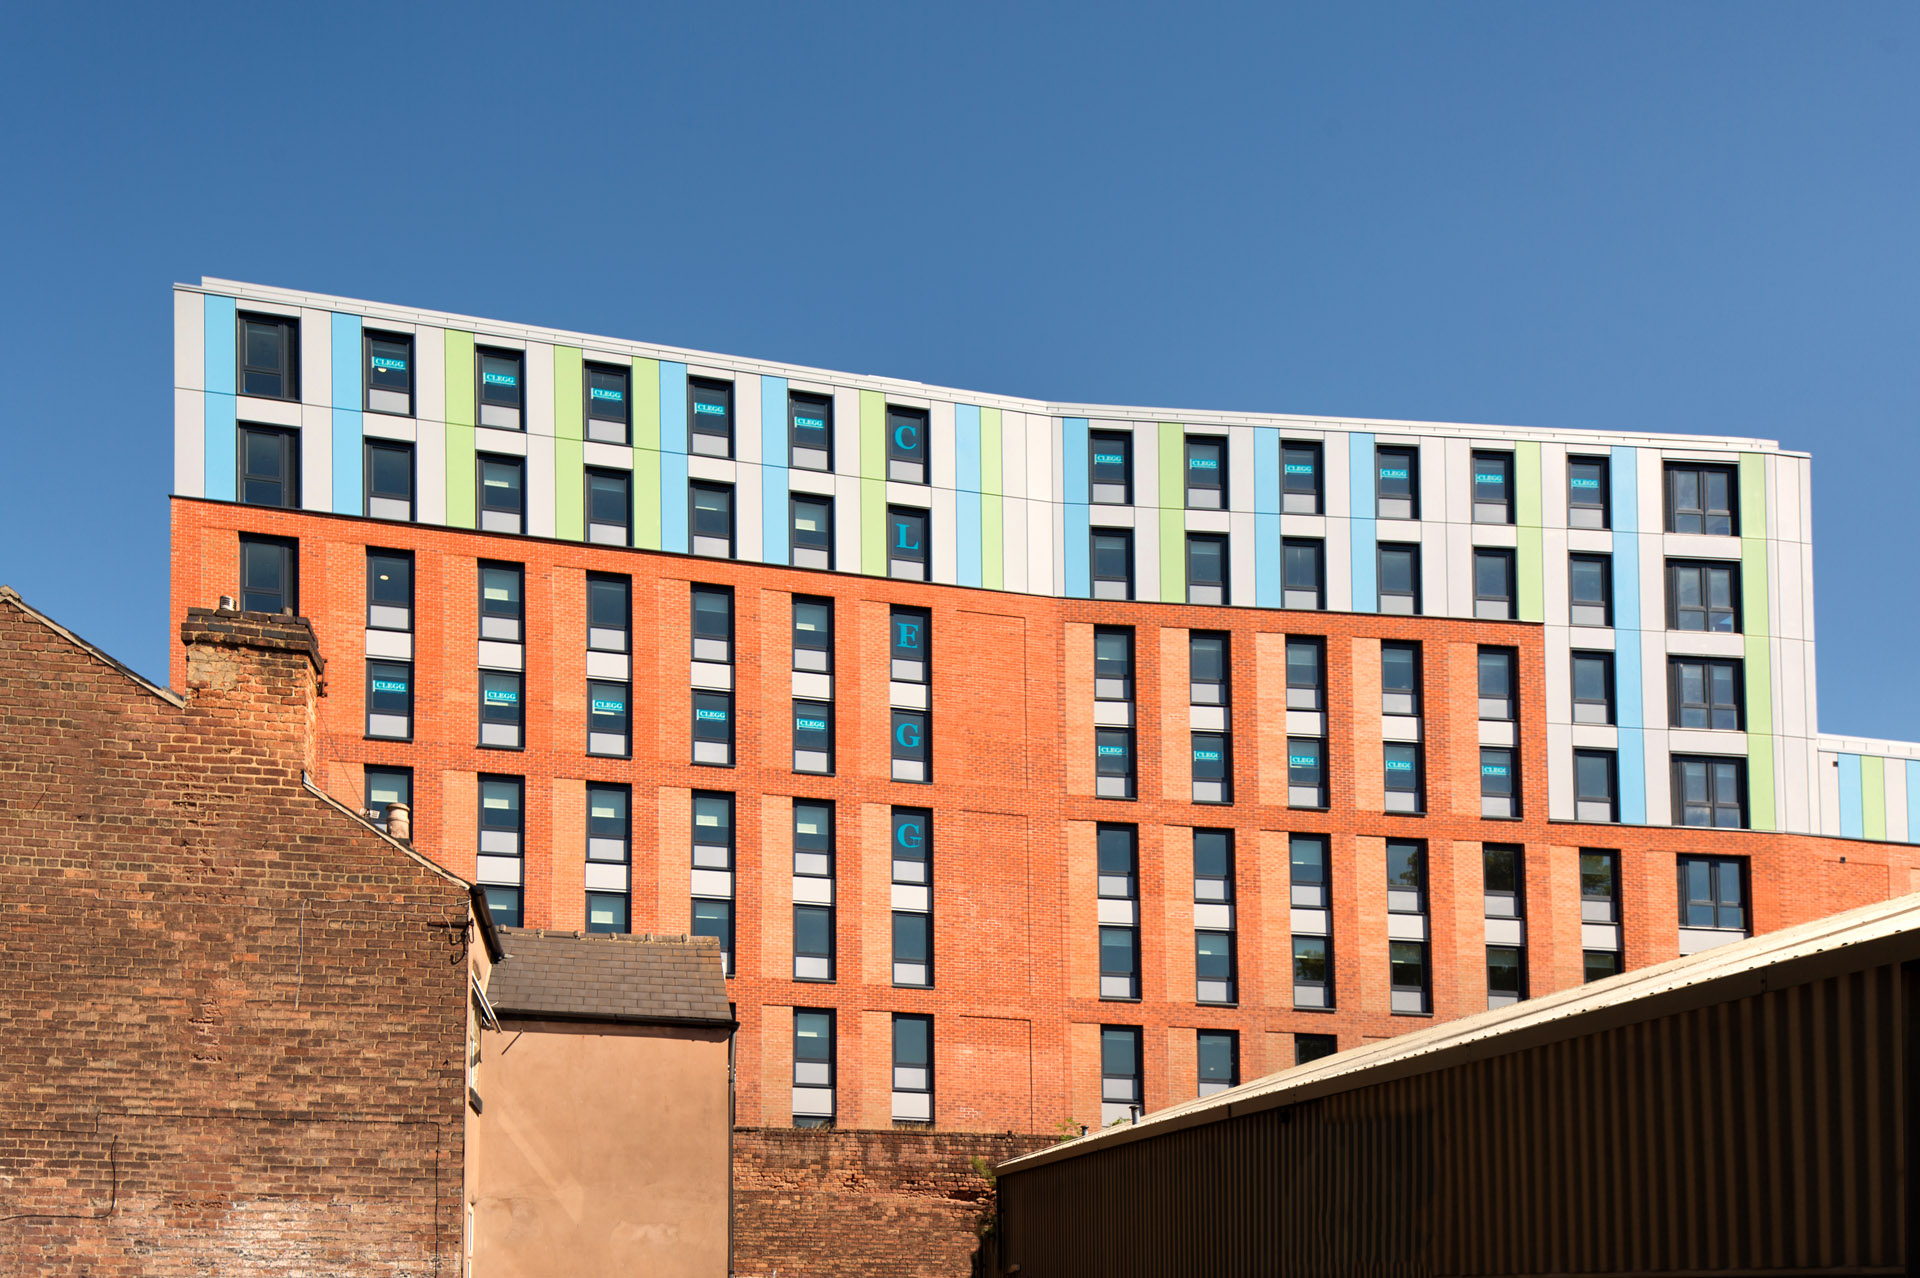 new apartment block, South East elevation